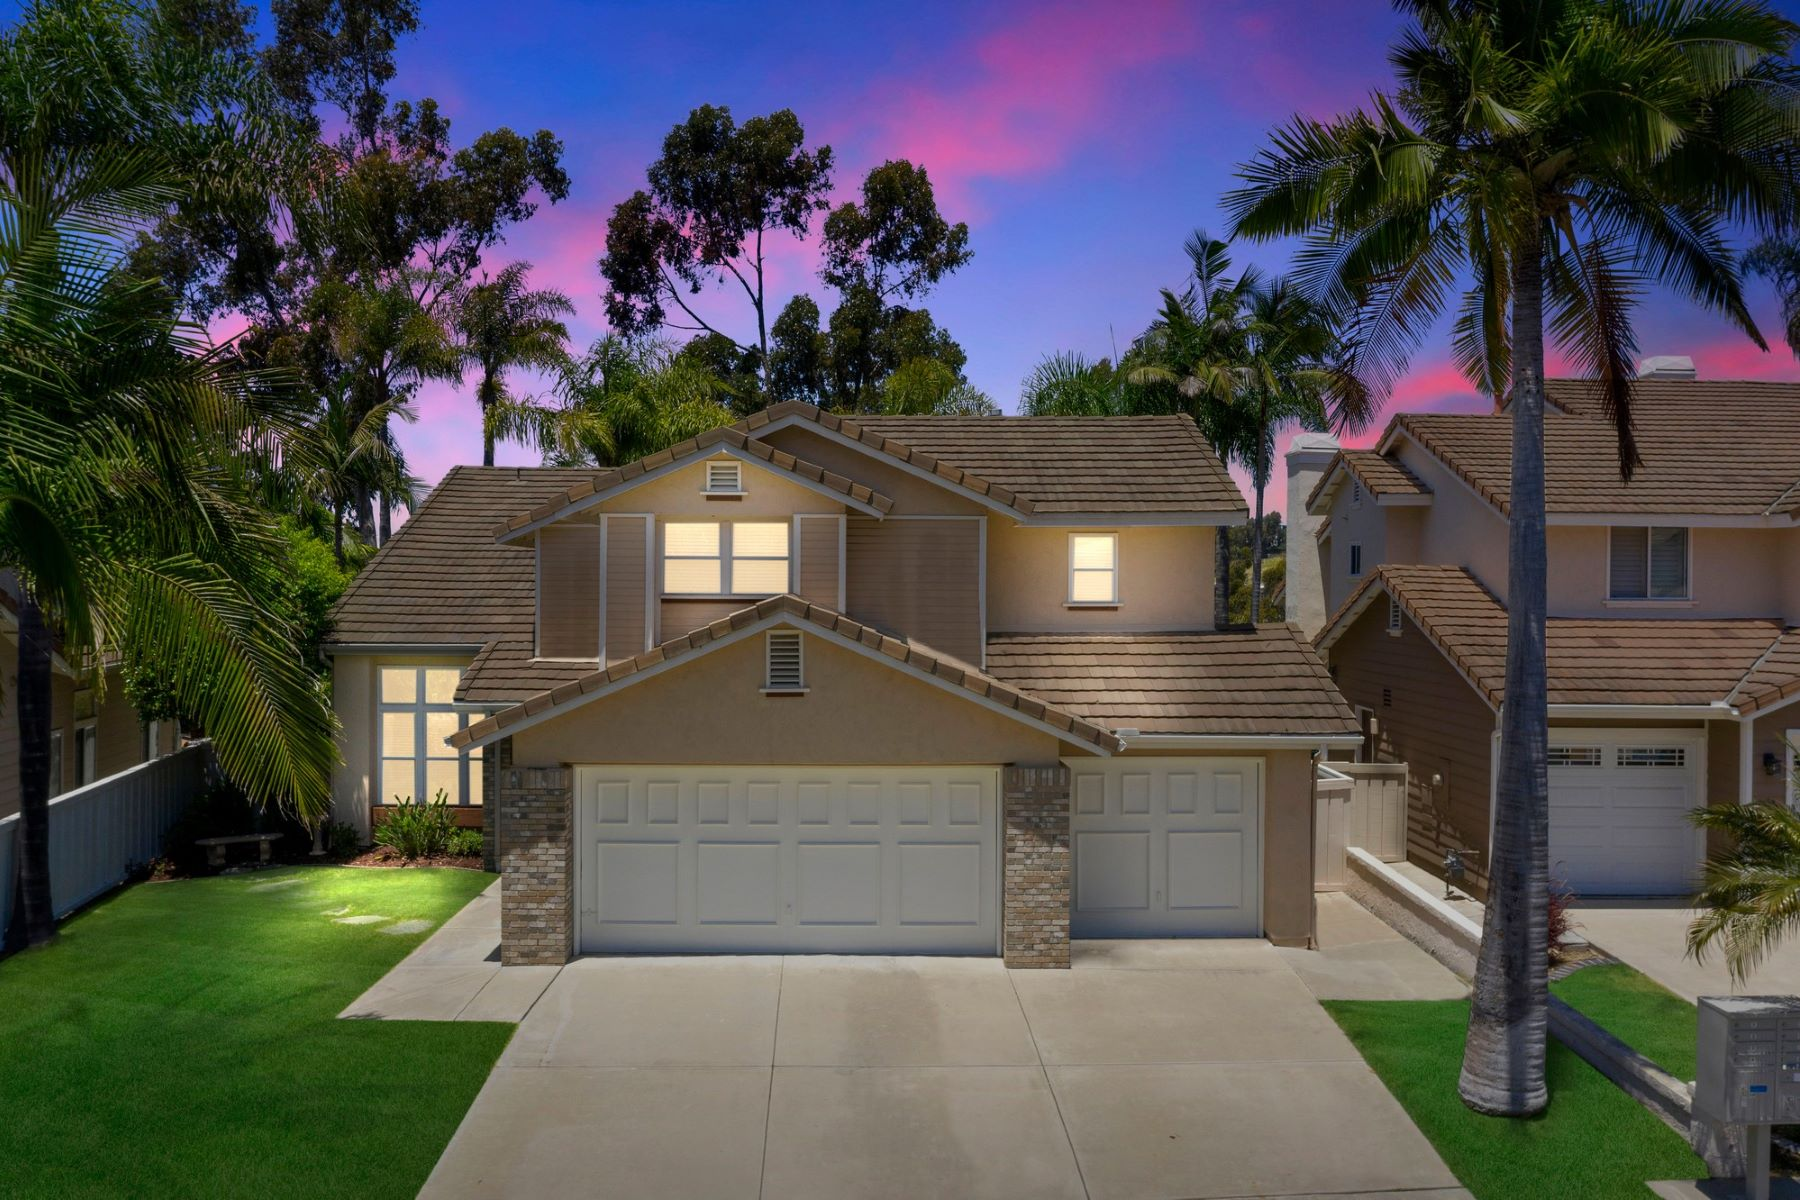 Single Family Homes for Sale at Rare Find in the Laurels 982 Hawthorne Court San Marcos, California 92078 United States